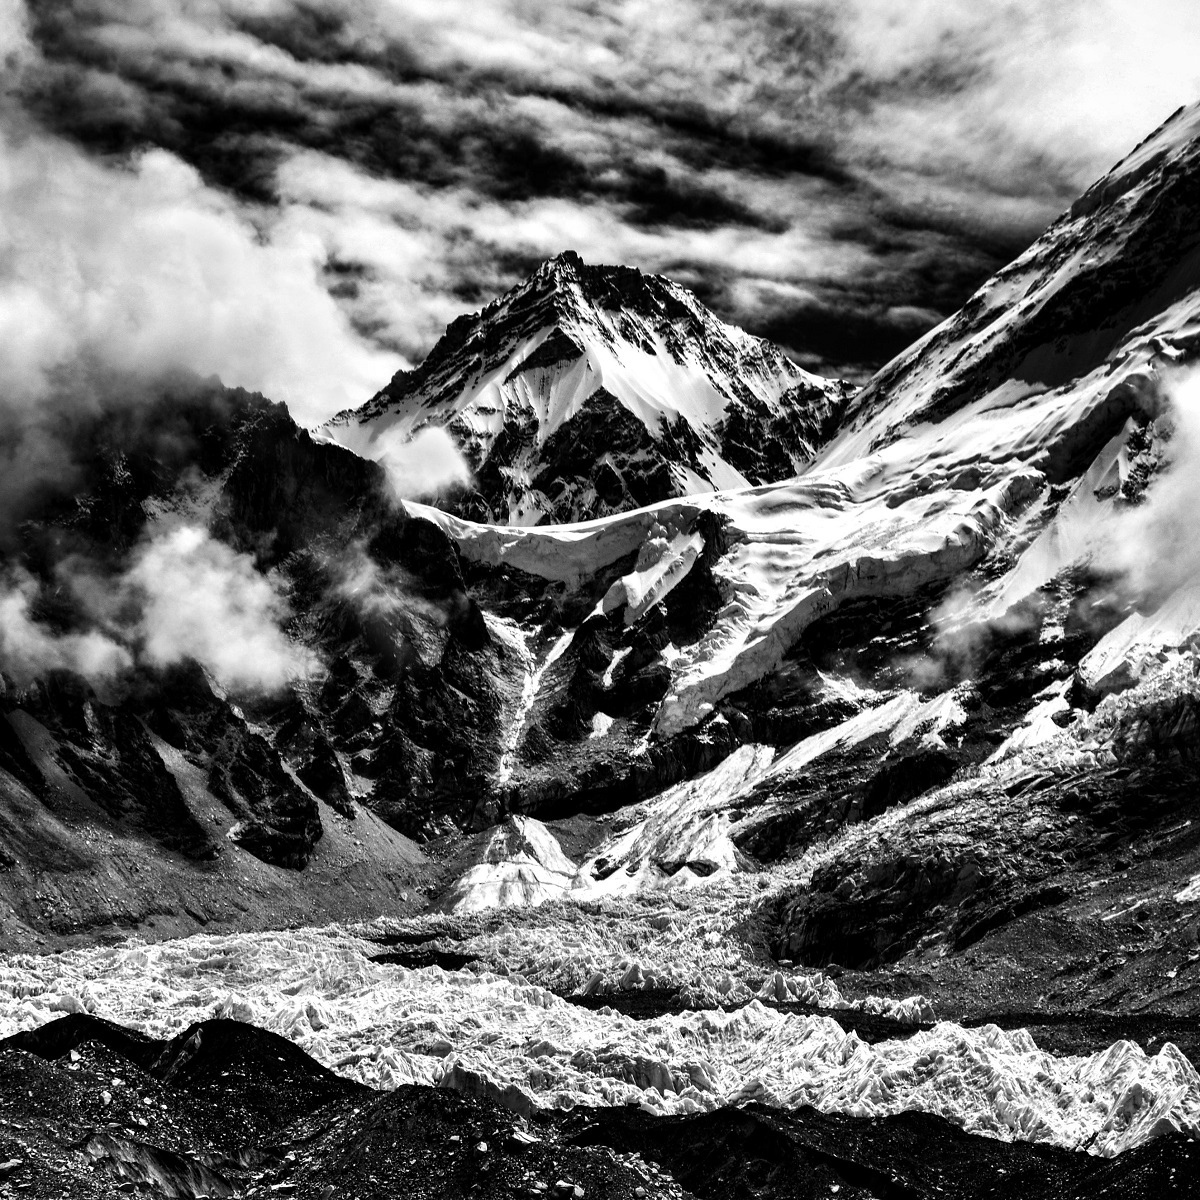 The Himalayas hosts the highest mountains in the world, with 50 exceeding 7,200 meters in elevation. It is home to 10 of the planets 14 highest peaks.  This picture is of Mount Everest, the highest of the Himalayan mountains. At an altitude of 8,850 meters (29,035 feet), Mount Everest is considered the highest point on Earth.